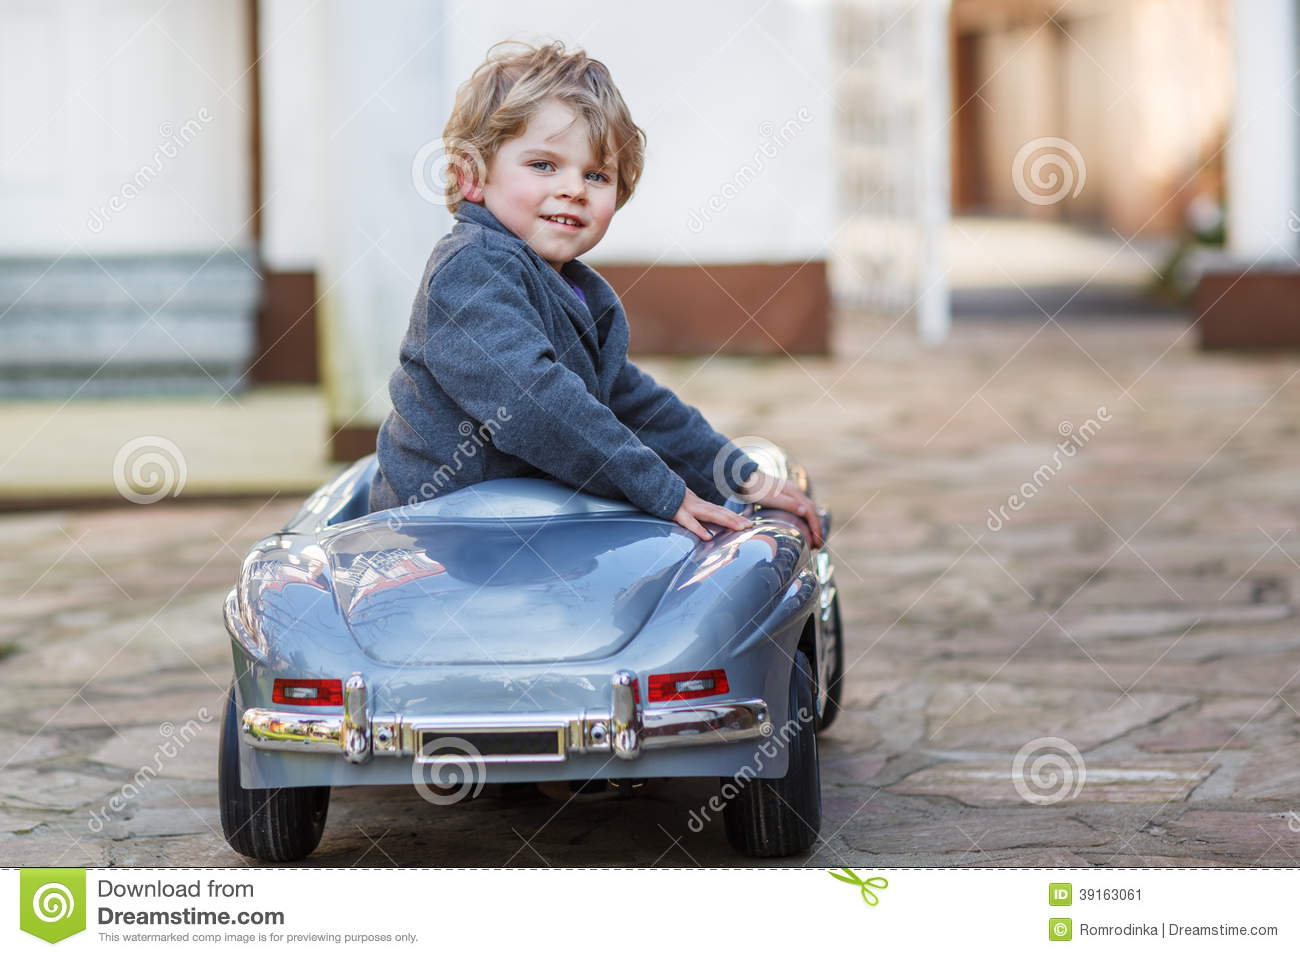 Little Big Boys Toys : Little boy driving big toy car outdoors stock image